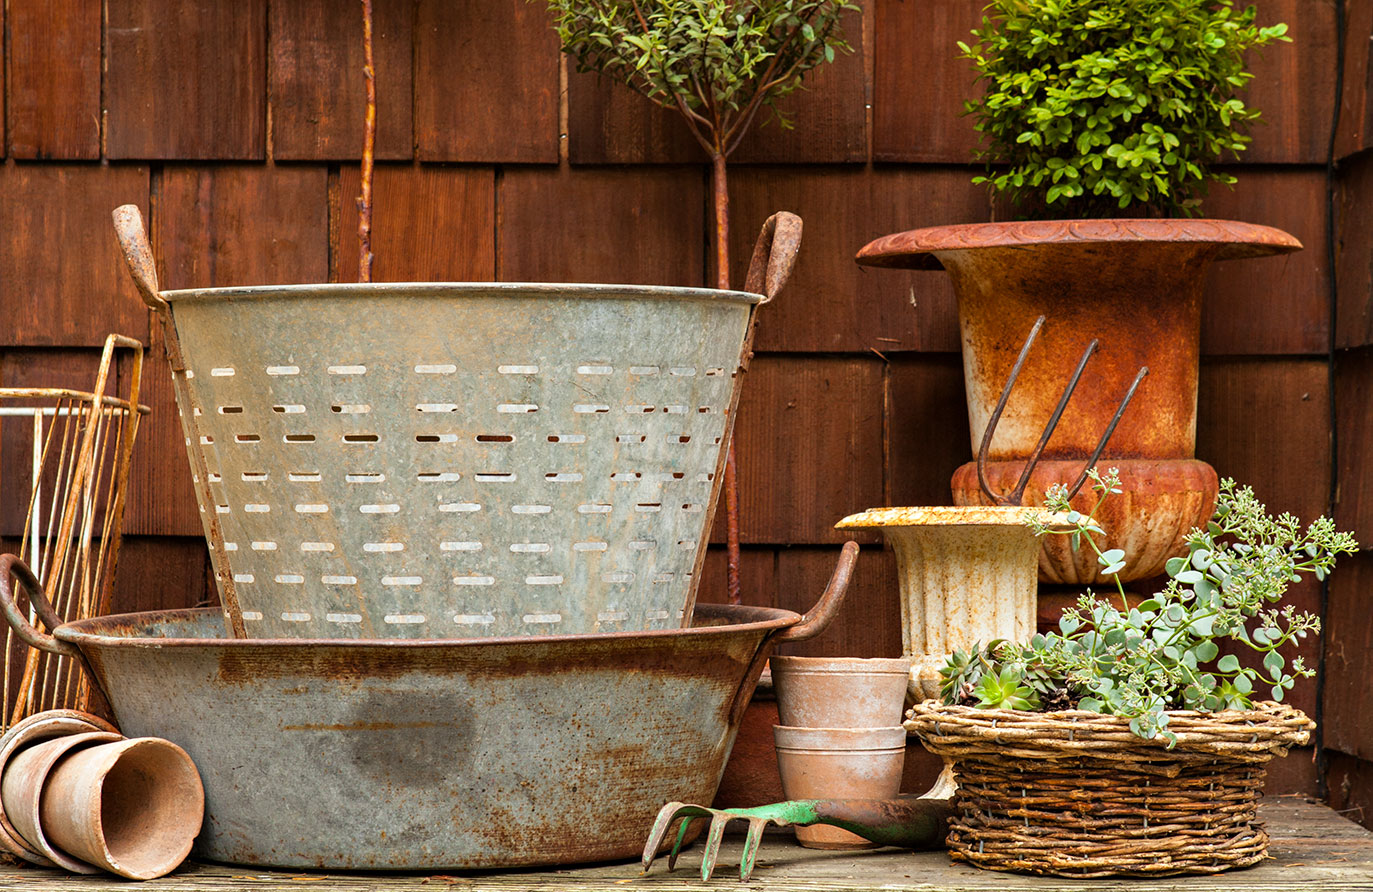 10 Vintage Garden Décor Ideas - Cottage style decorating, renovating and entertaining Ideas for indoors and out